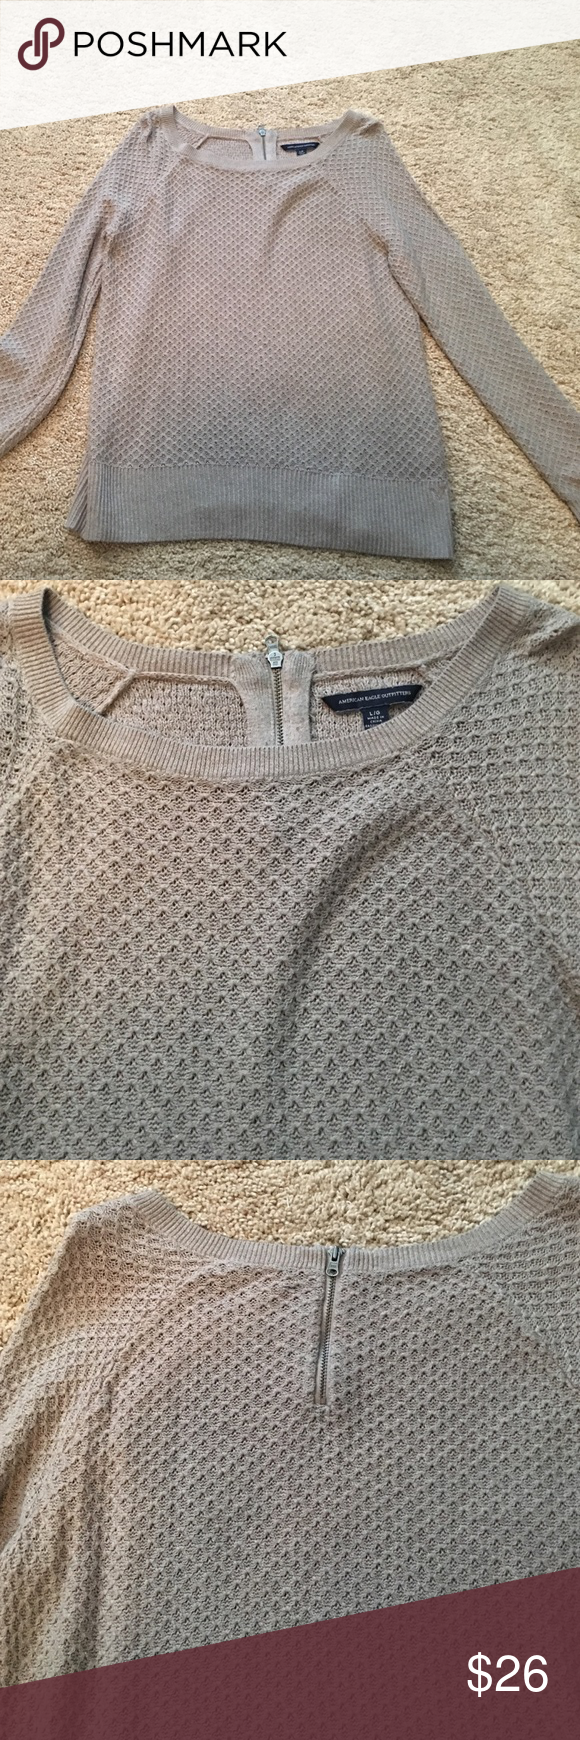 Taupe Textured Sweater Taupe/gray colored sweater. Excellent condition! Zipper detail in back. American Eagle Outfitters Sweaters Crew & Scoop Necks